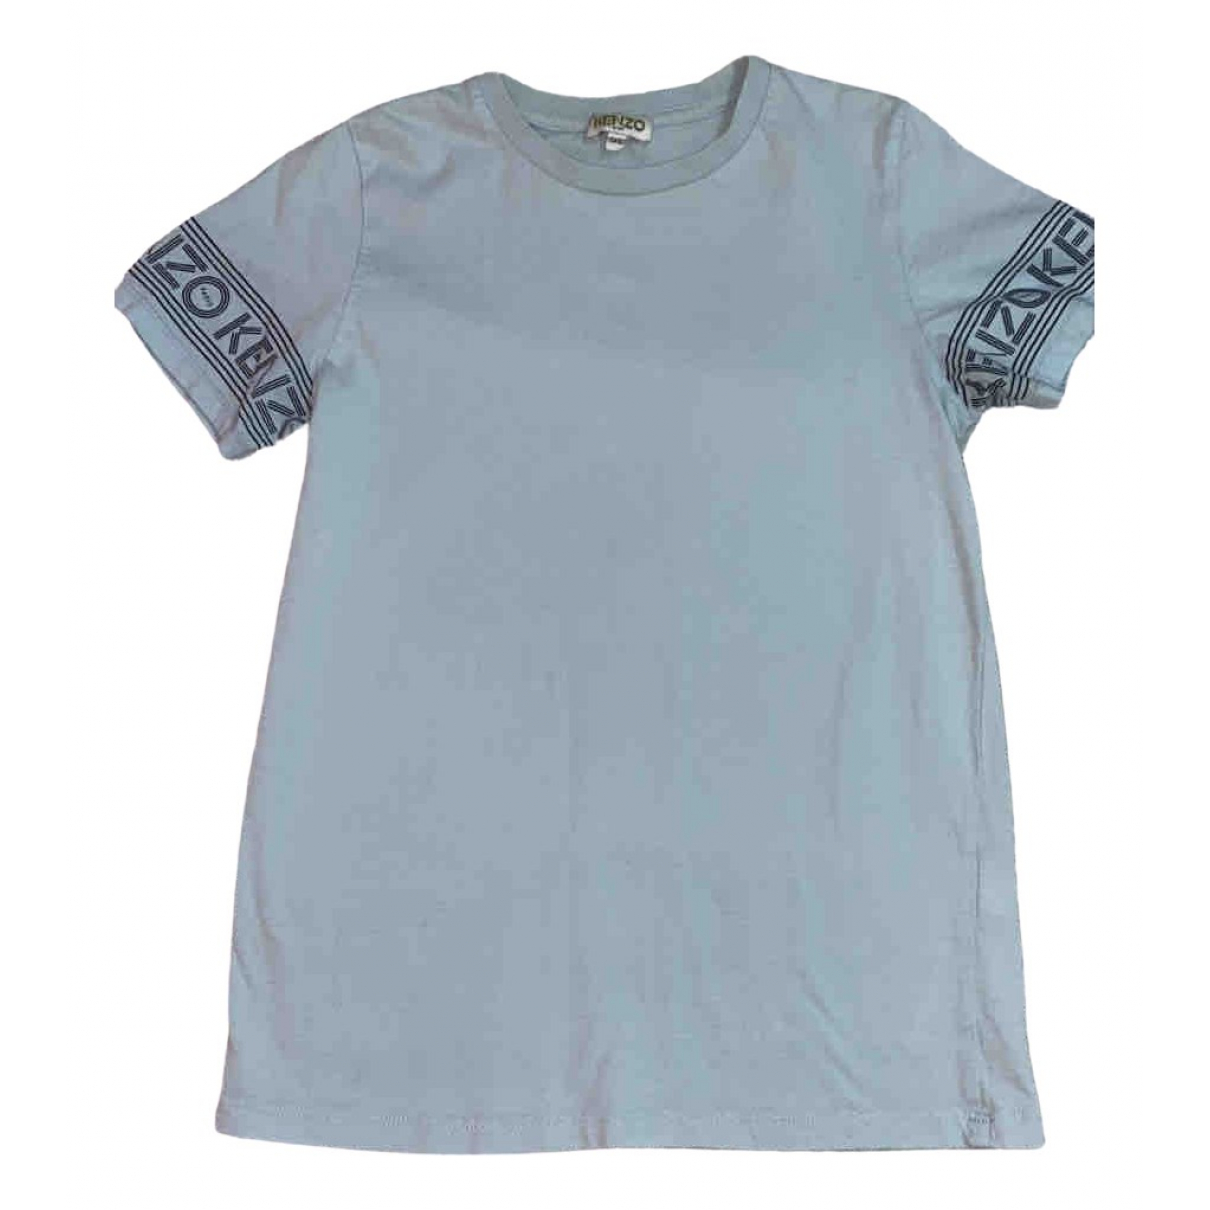 Kenzo \N Turquoise Cotton  top for Women 36 IT